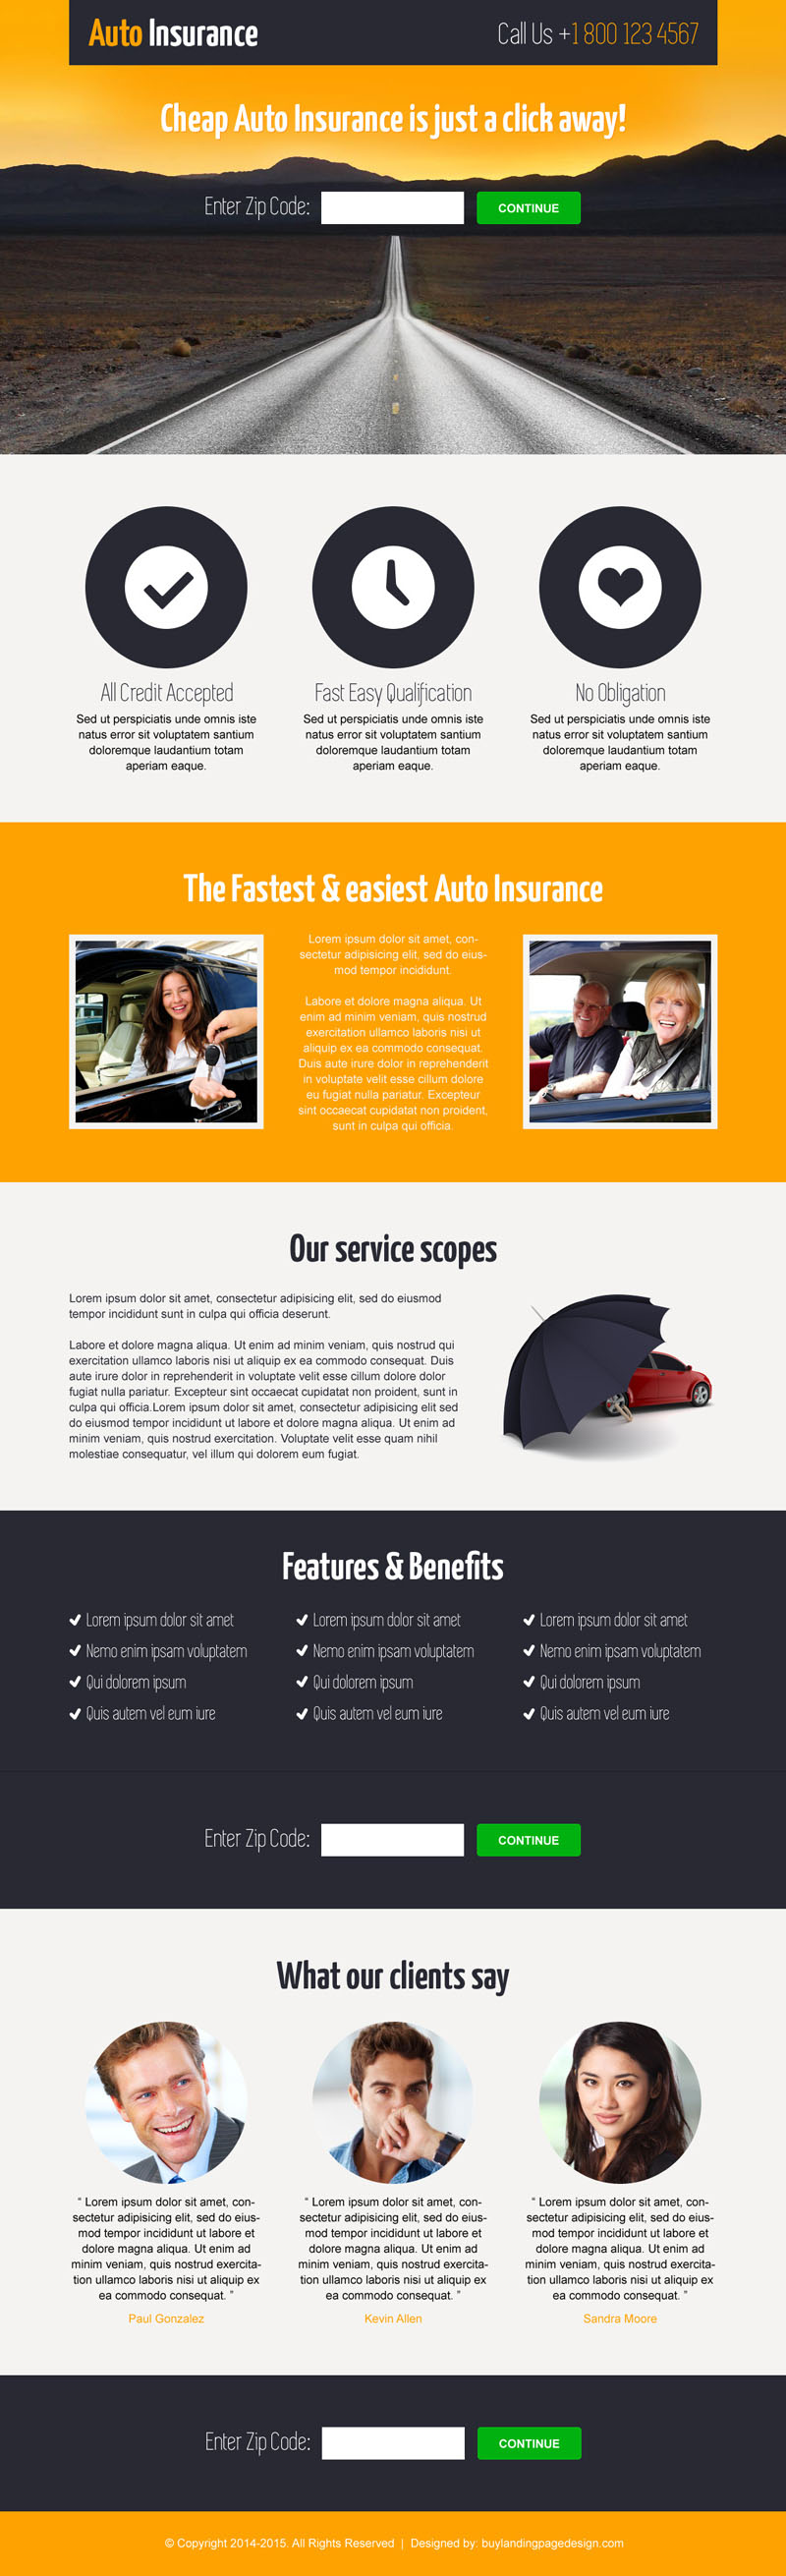 cheap-auto-insurance-by-zip-code-lead-capture-landing-page-design-templates-035